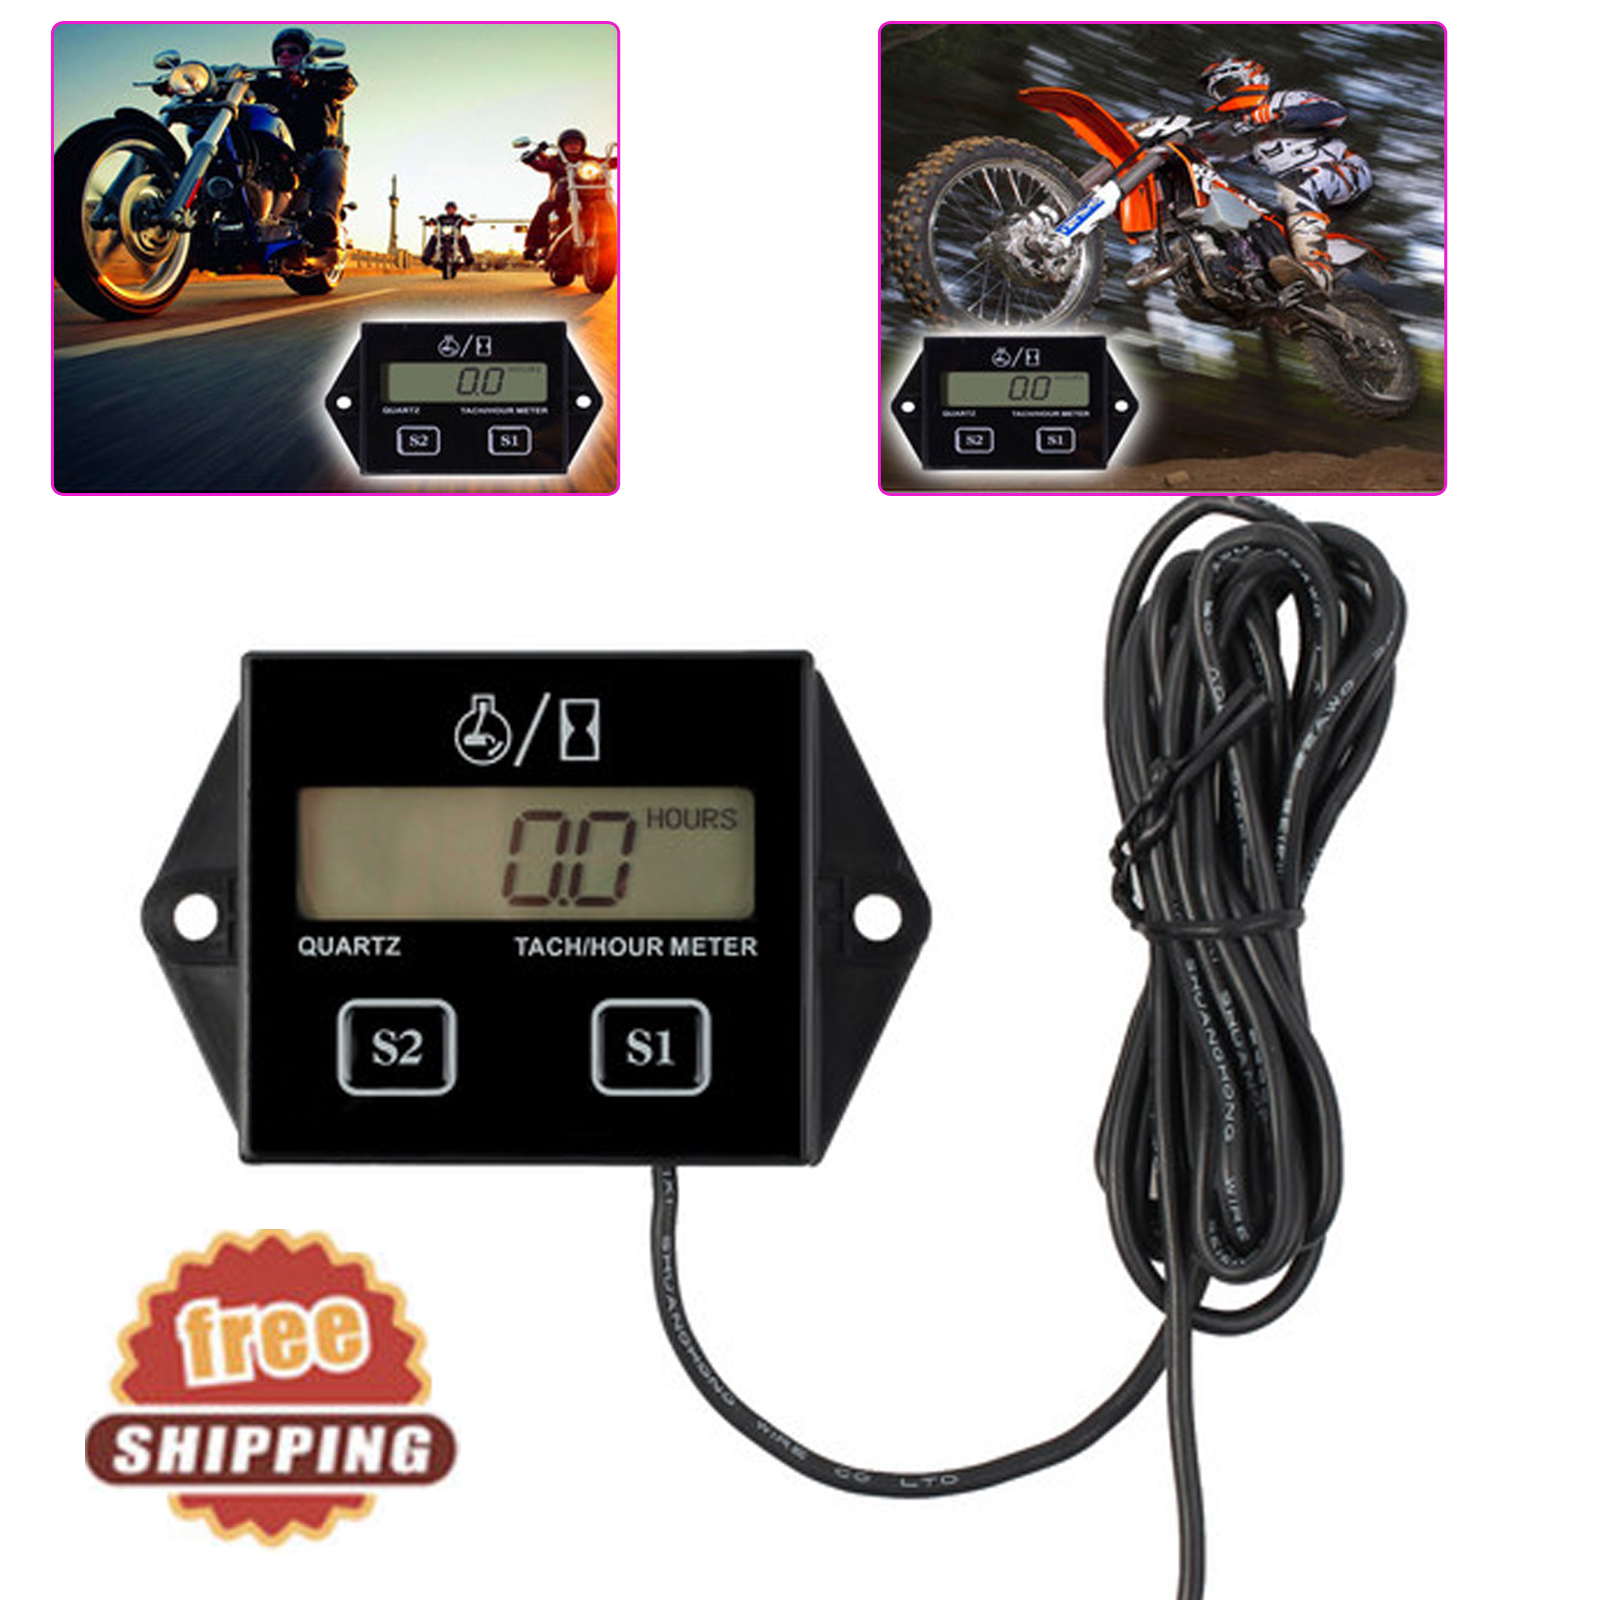 Details about Digital Engine RPM Tach Tachometer Hour Meter Gauge 2/4 Strok  For Motorcycle ATV